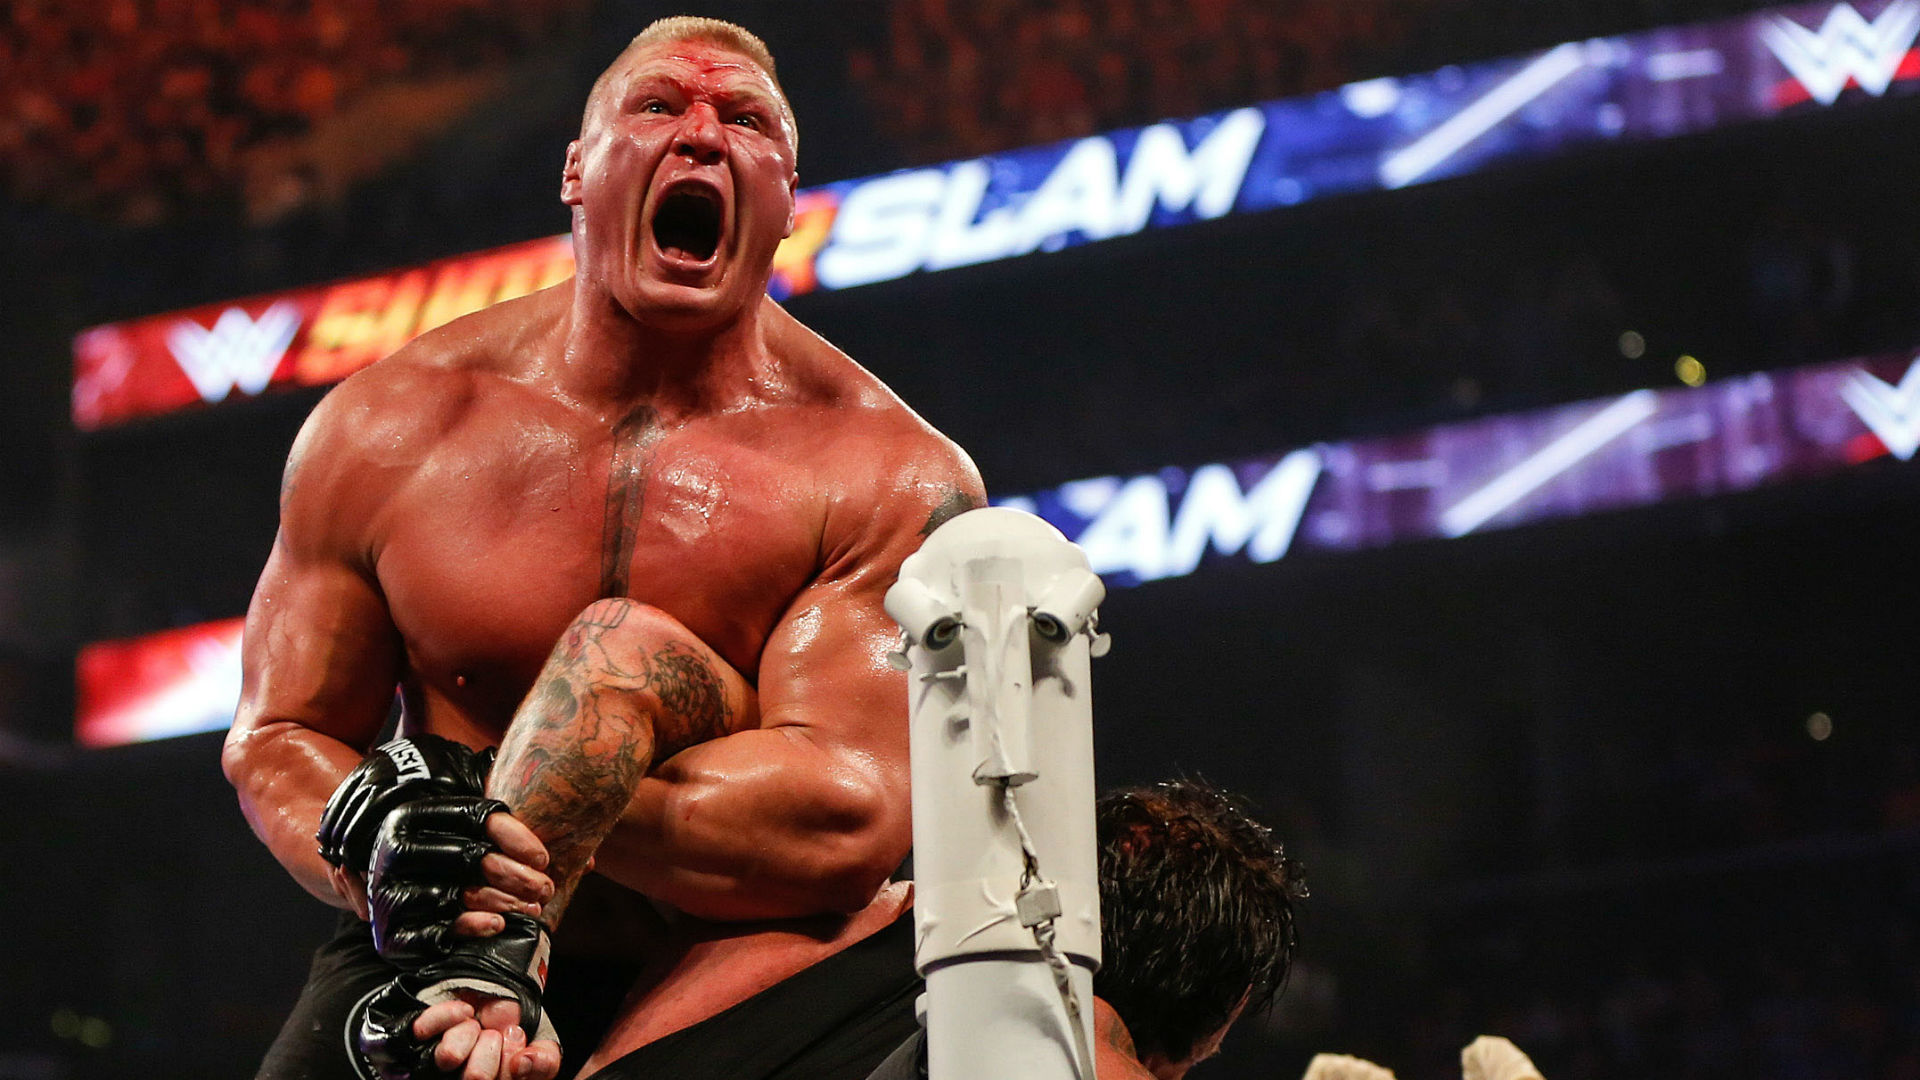 Brock Lesnar The Undertaker SummerSlam